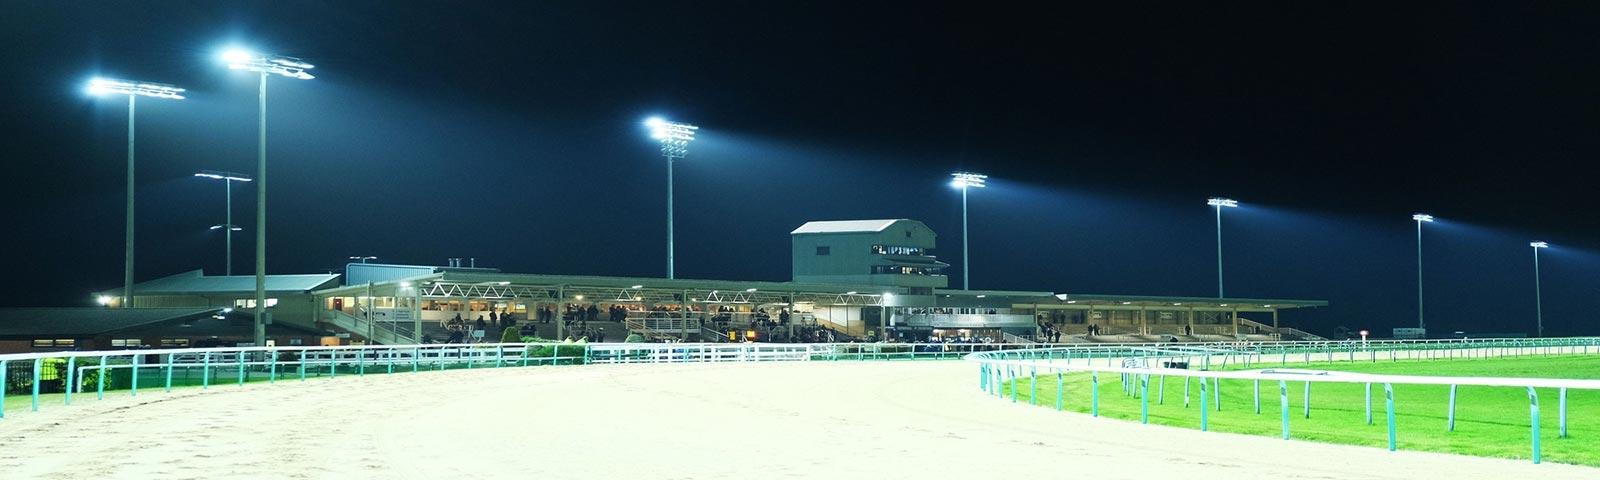 Southwell Racecourse floodlit at night